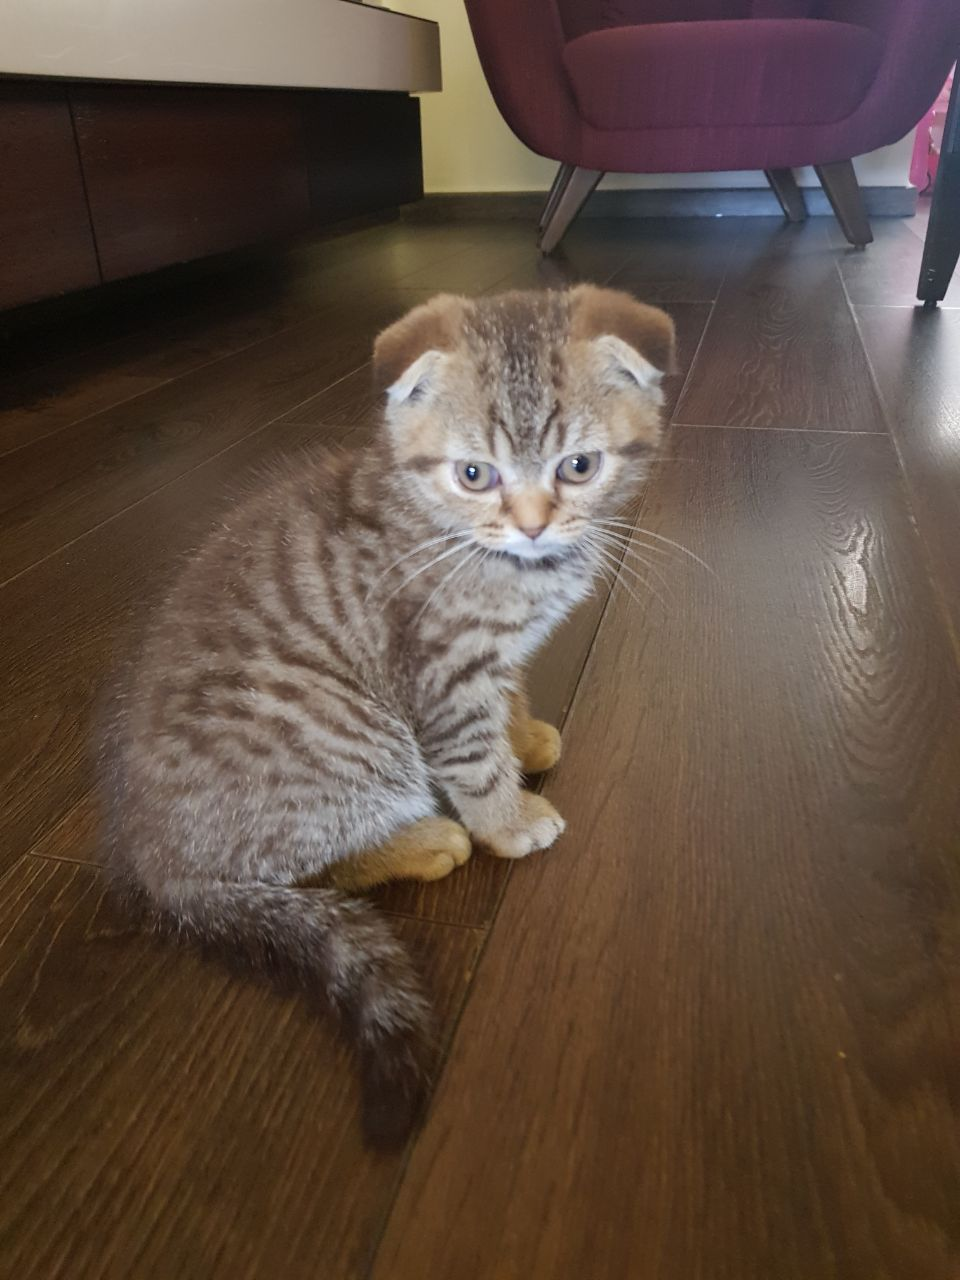 Cat in Lebanon: My Name is Boots, the cute tiger scottish fold